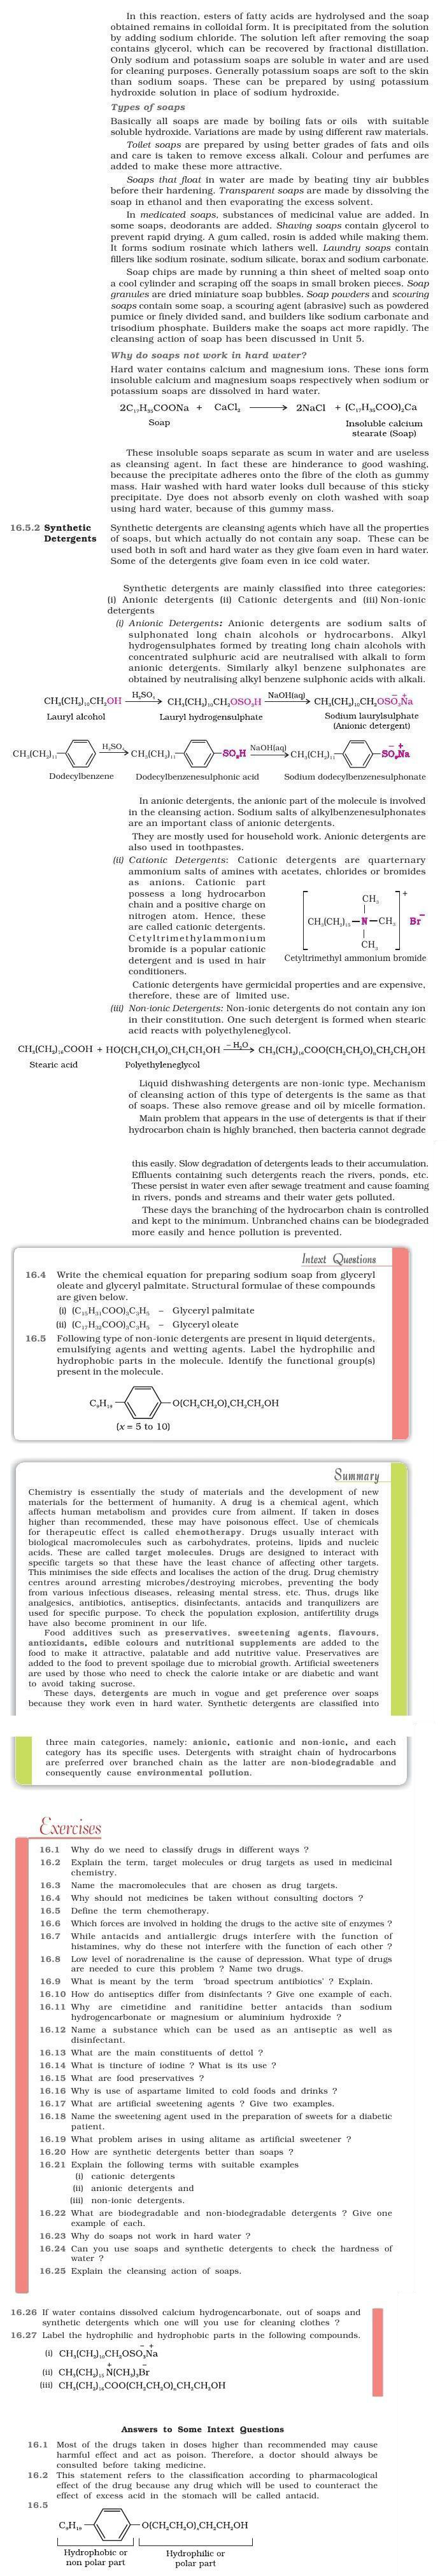 NCERT Class XII Chemistry Chapter 16 - Chemistry in Everyday Life